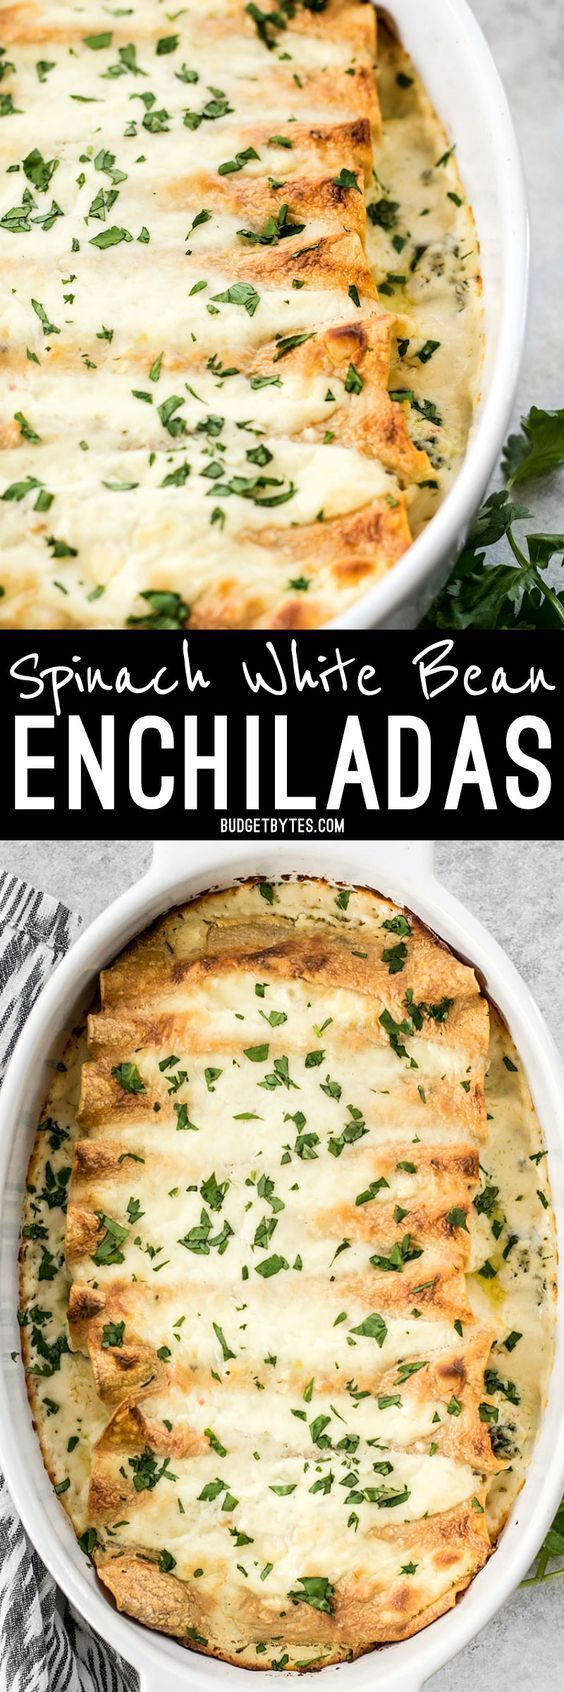 White Bean Enchiladas with Pepper Jack Sauce White beans make an inexpensive and fiber filled alternative to chicken in these creamy Spinach White Spinach White Bean Enchiladas.White beans make an inexpensive and fiber filled alternative to chicken in these creamy Spinach White Spinach White Bean Enchiladas.